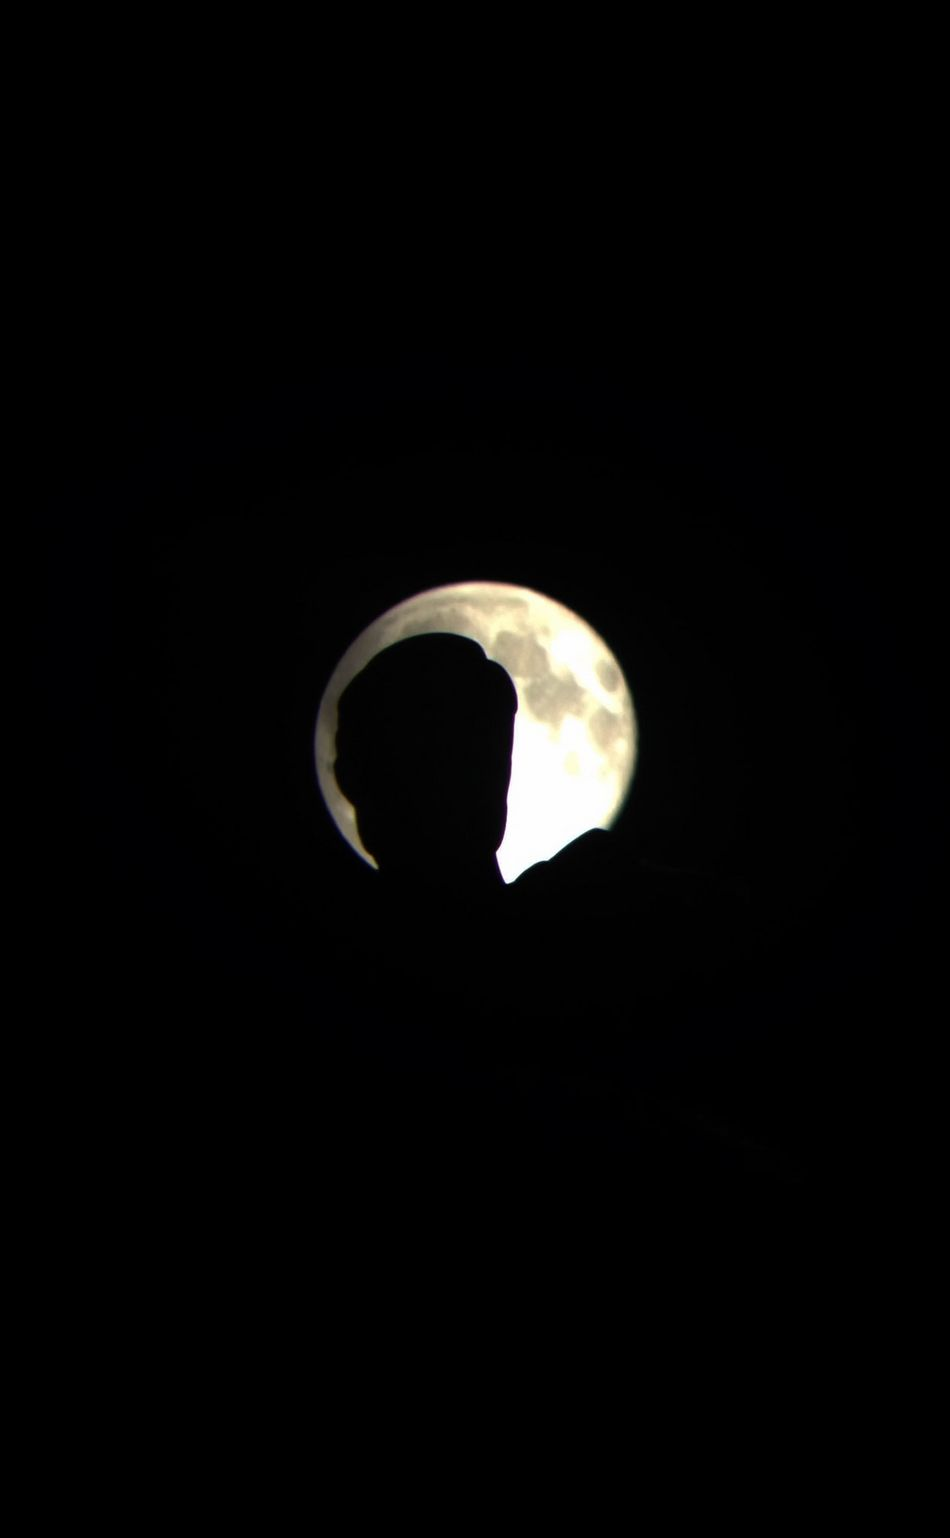 The super moon silhouettes the Oregon Pioneer atop the Capitol building. Silhouette Moon IPhoneography Astrophotography